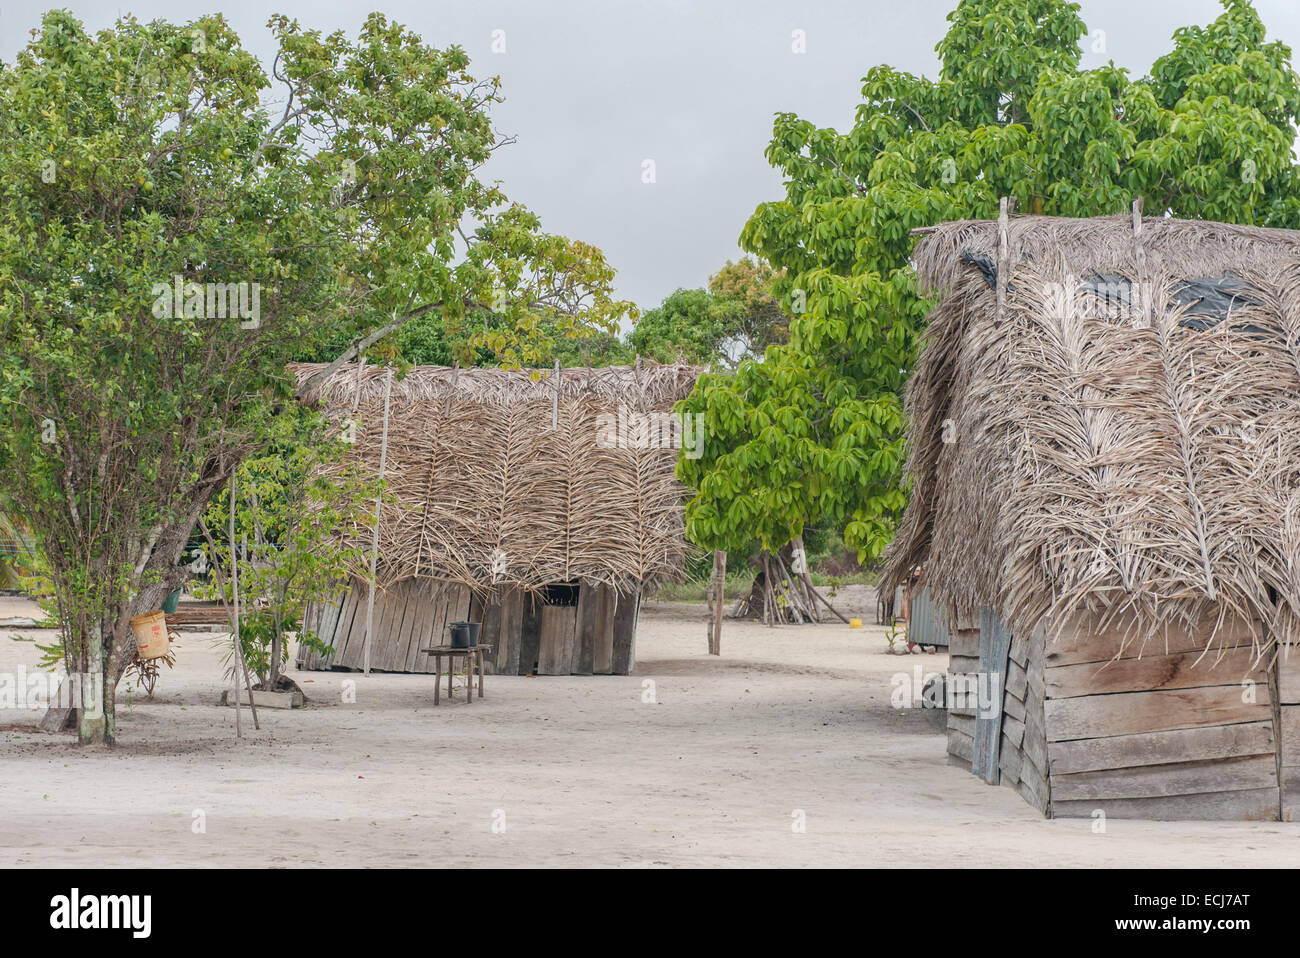 Traditional wooden huts with palm roof in the Amerindian village of Christiaankondre, Galibi, Suriname - Stock Image